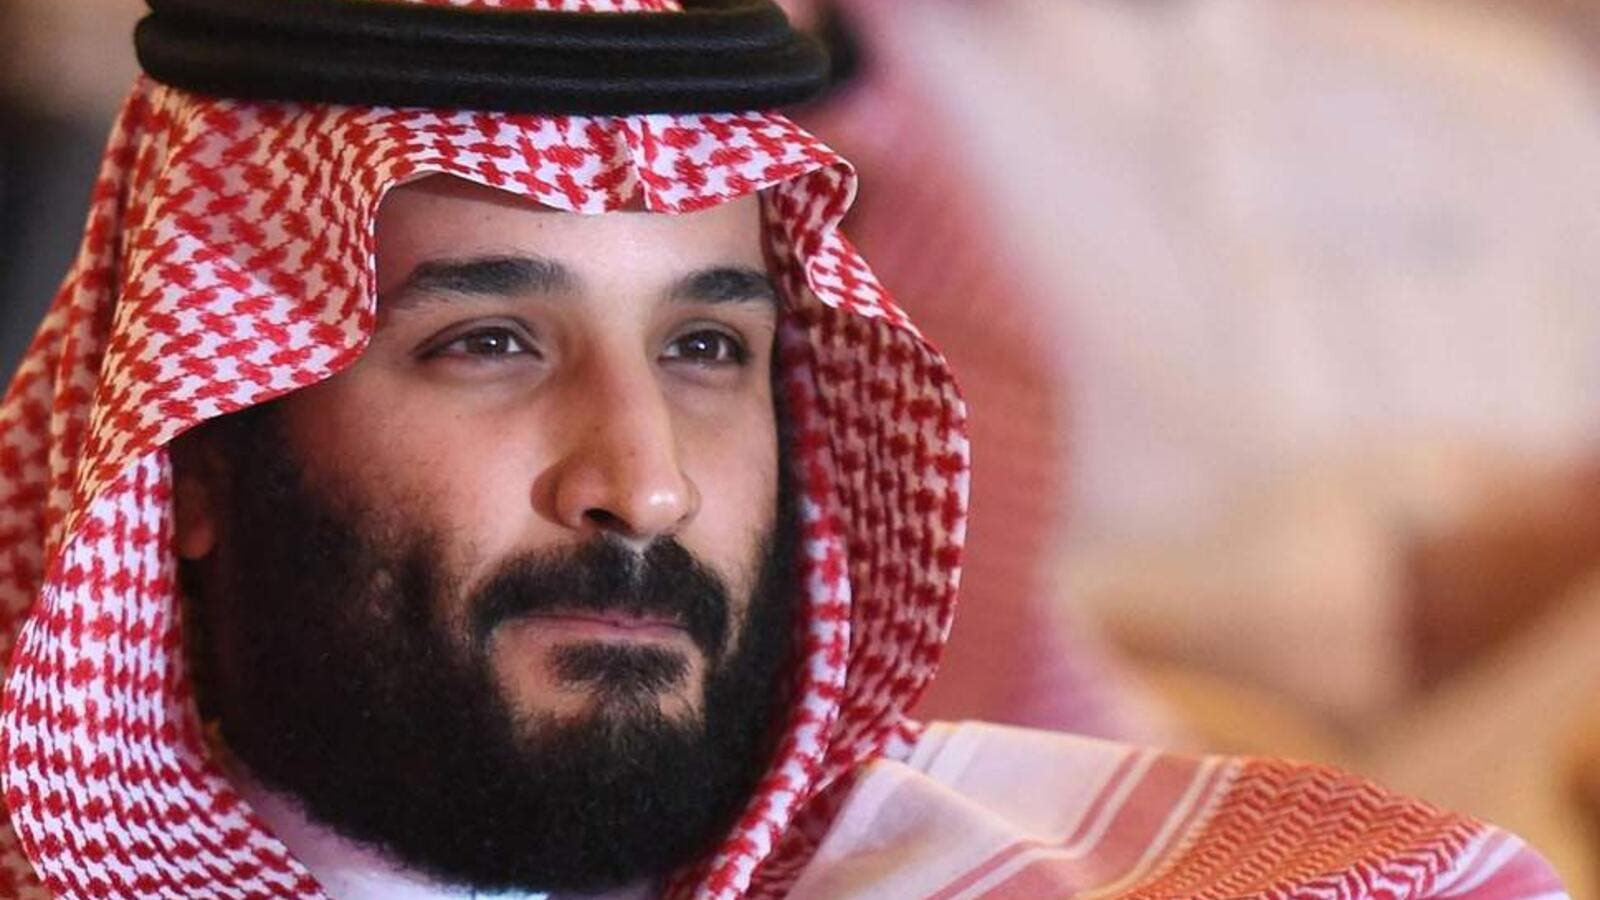 Rumors have been circulating over the fate of Saudi Crown Prince, Mohammed Bin Salman as he disappeared for more than one month from public stage. (File Photo/ AFP)